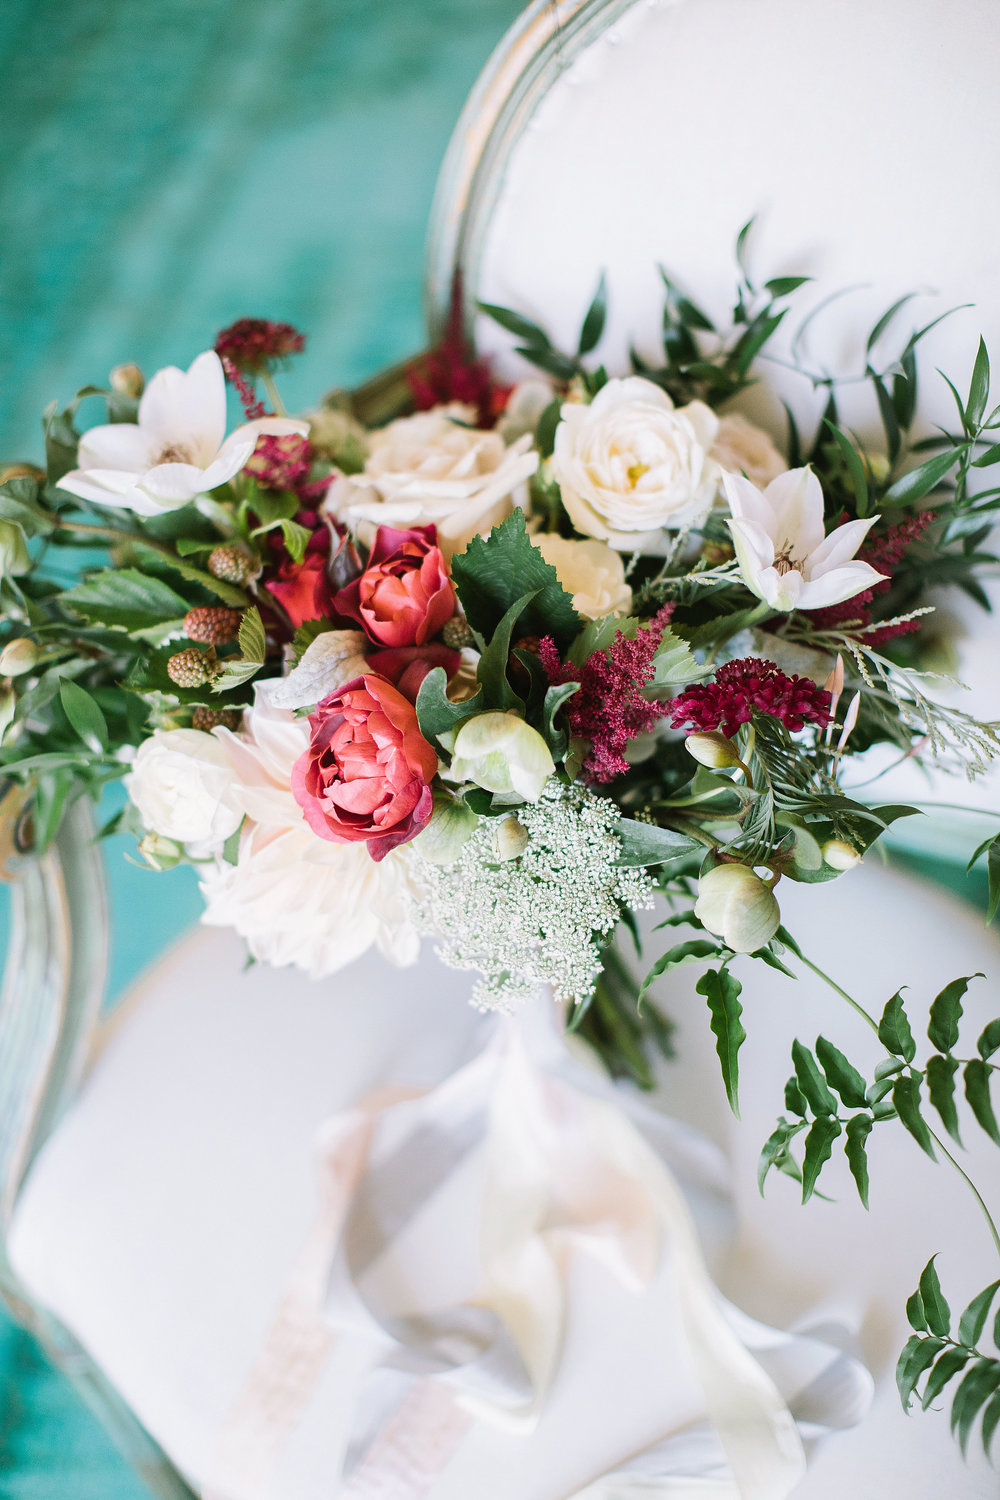 Whimsical bridal bouquet with hot cocoa roses, blackberries, clematis, and hellebores by Venn Floral photographed by The Edges at Olympia's Valley Estate with A Savvy Event.